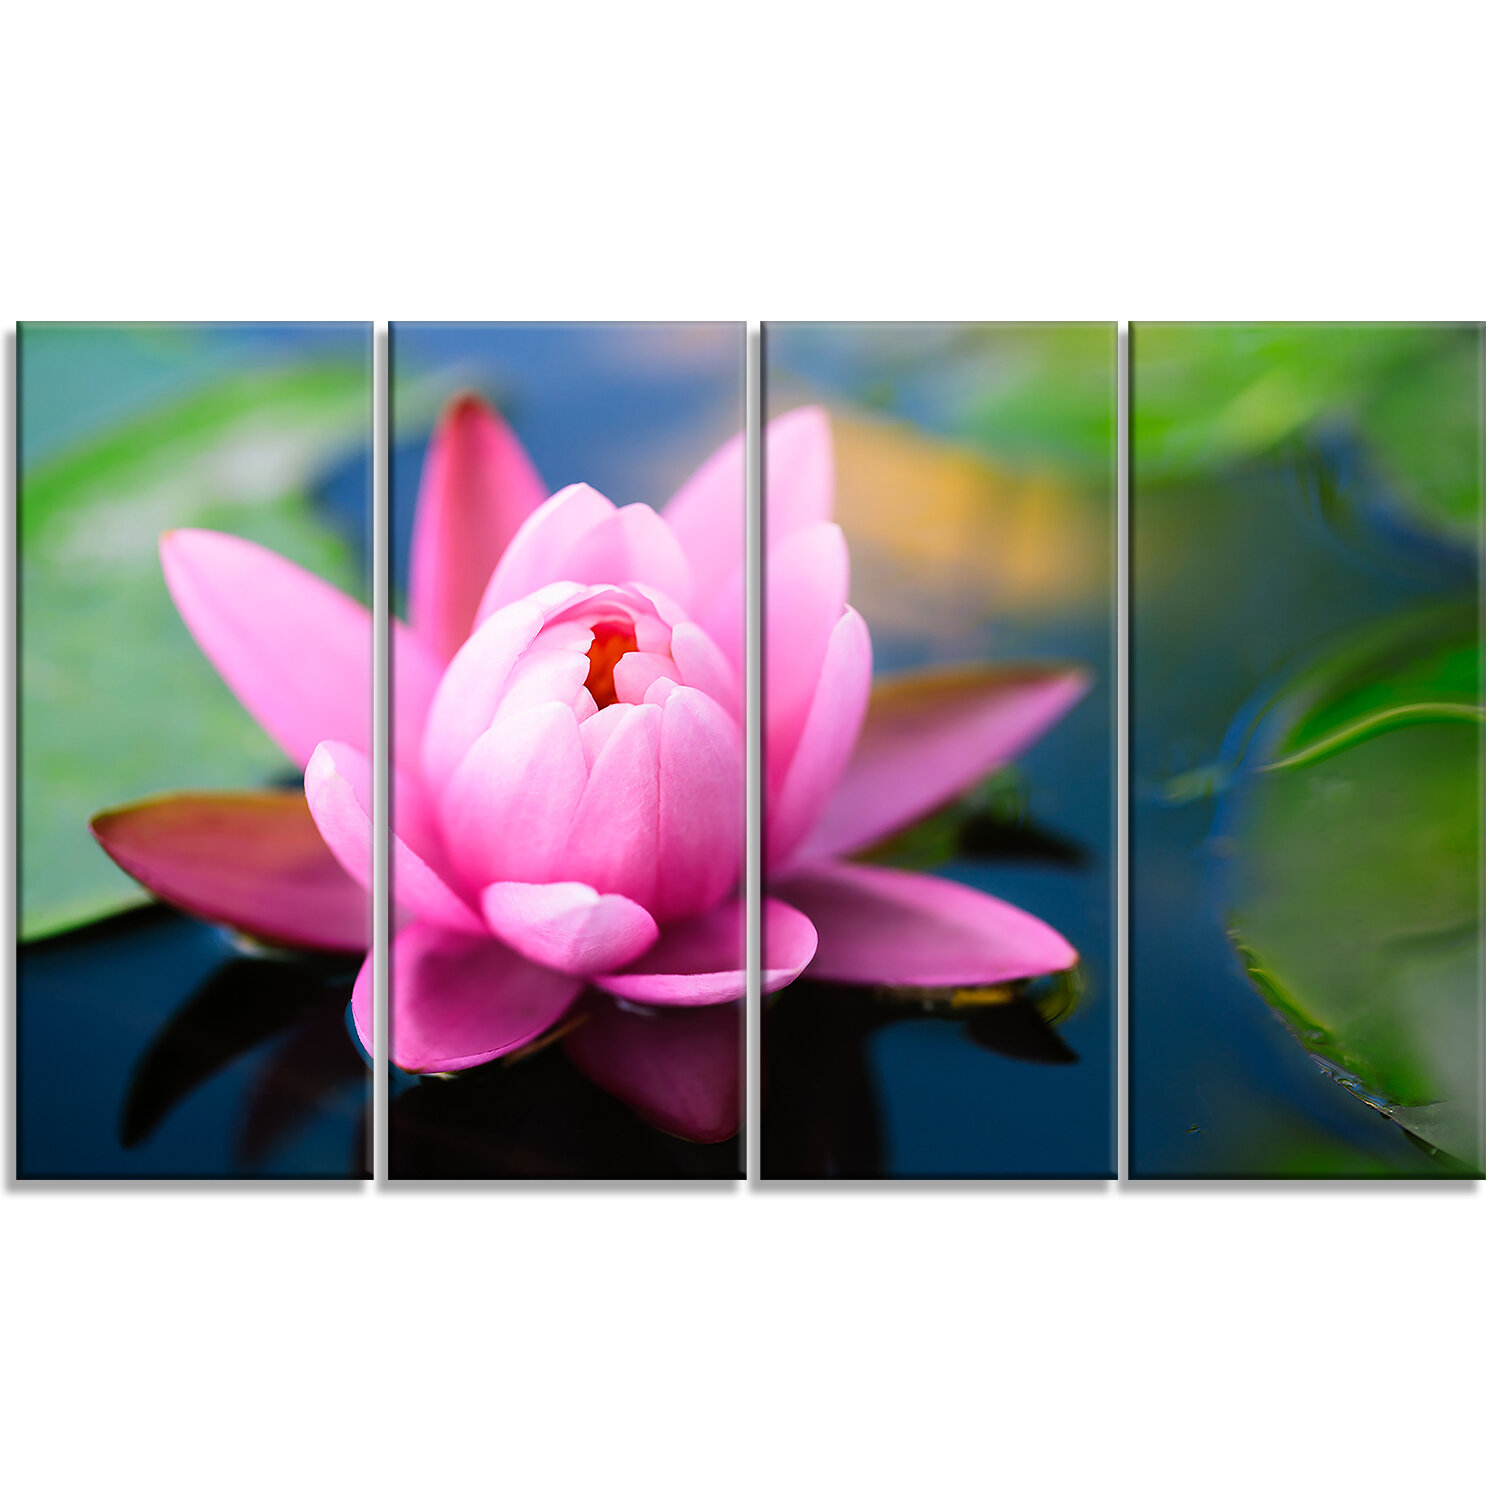 Designart Large Lotus Flower In The Pond 4 Piece Photographic